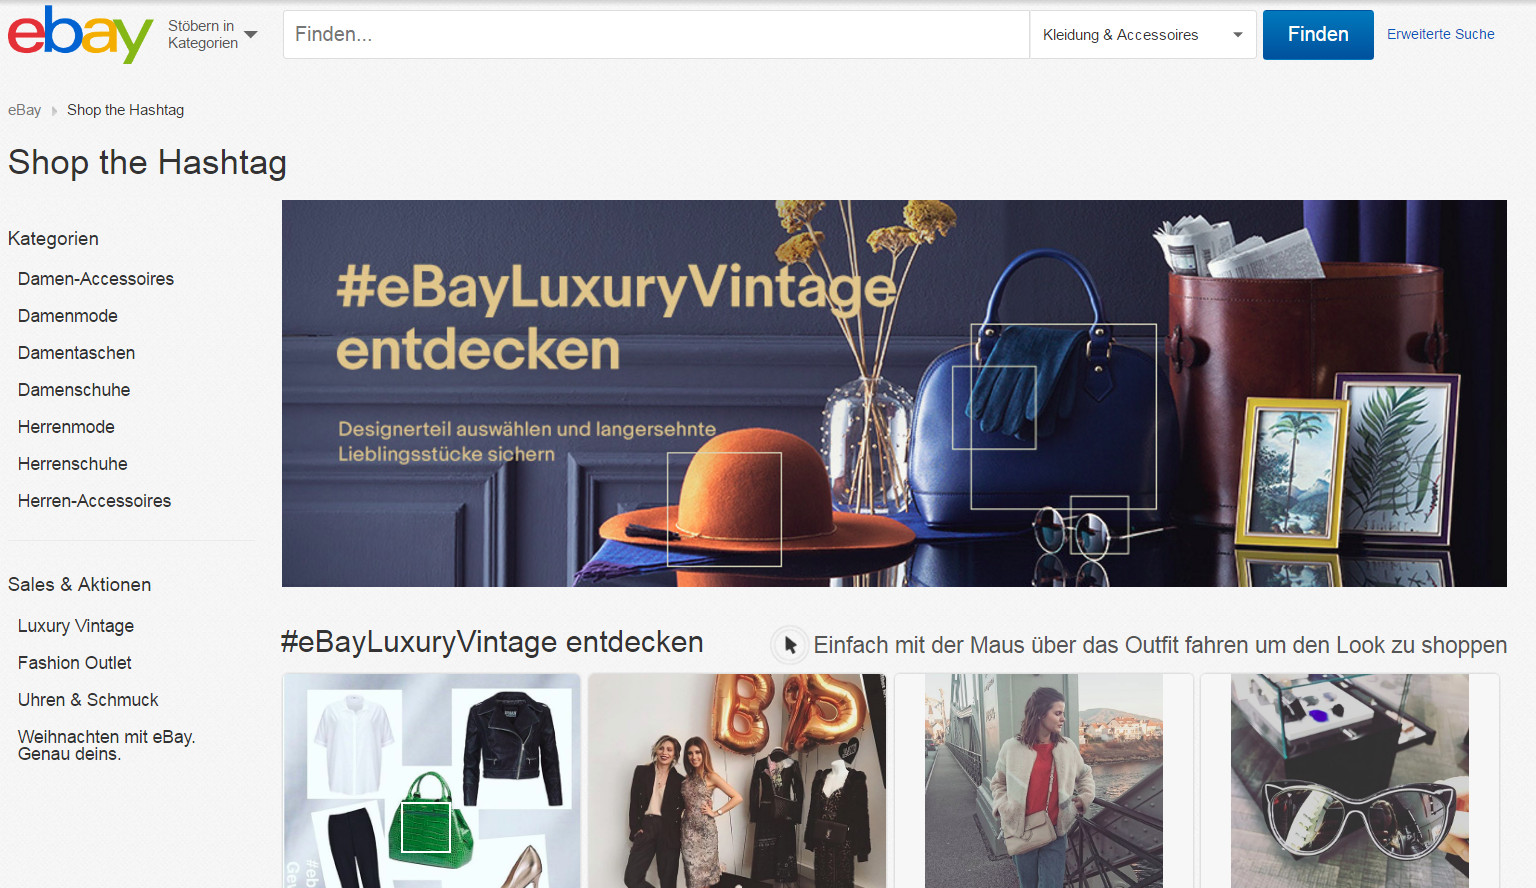 (Screenshot: eBay Luxury Vintage)